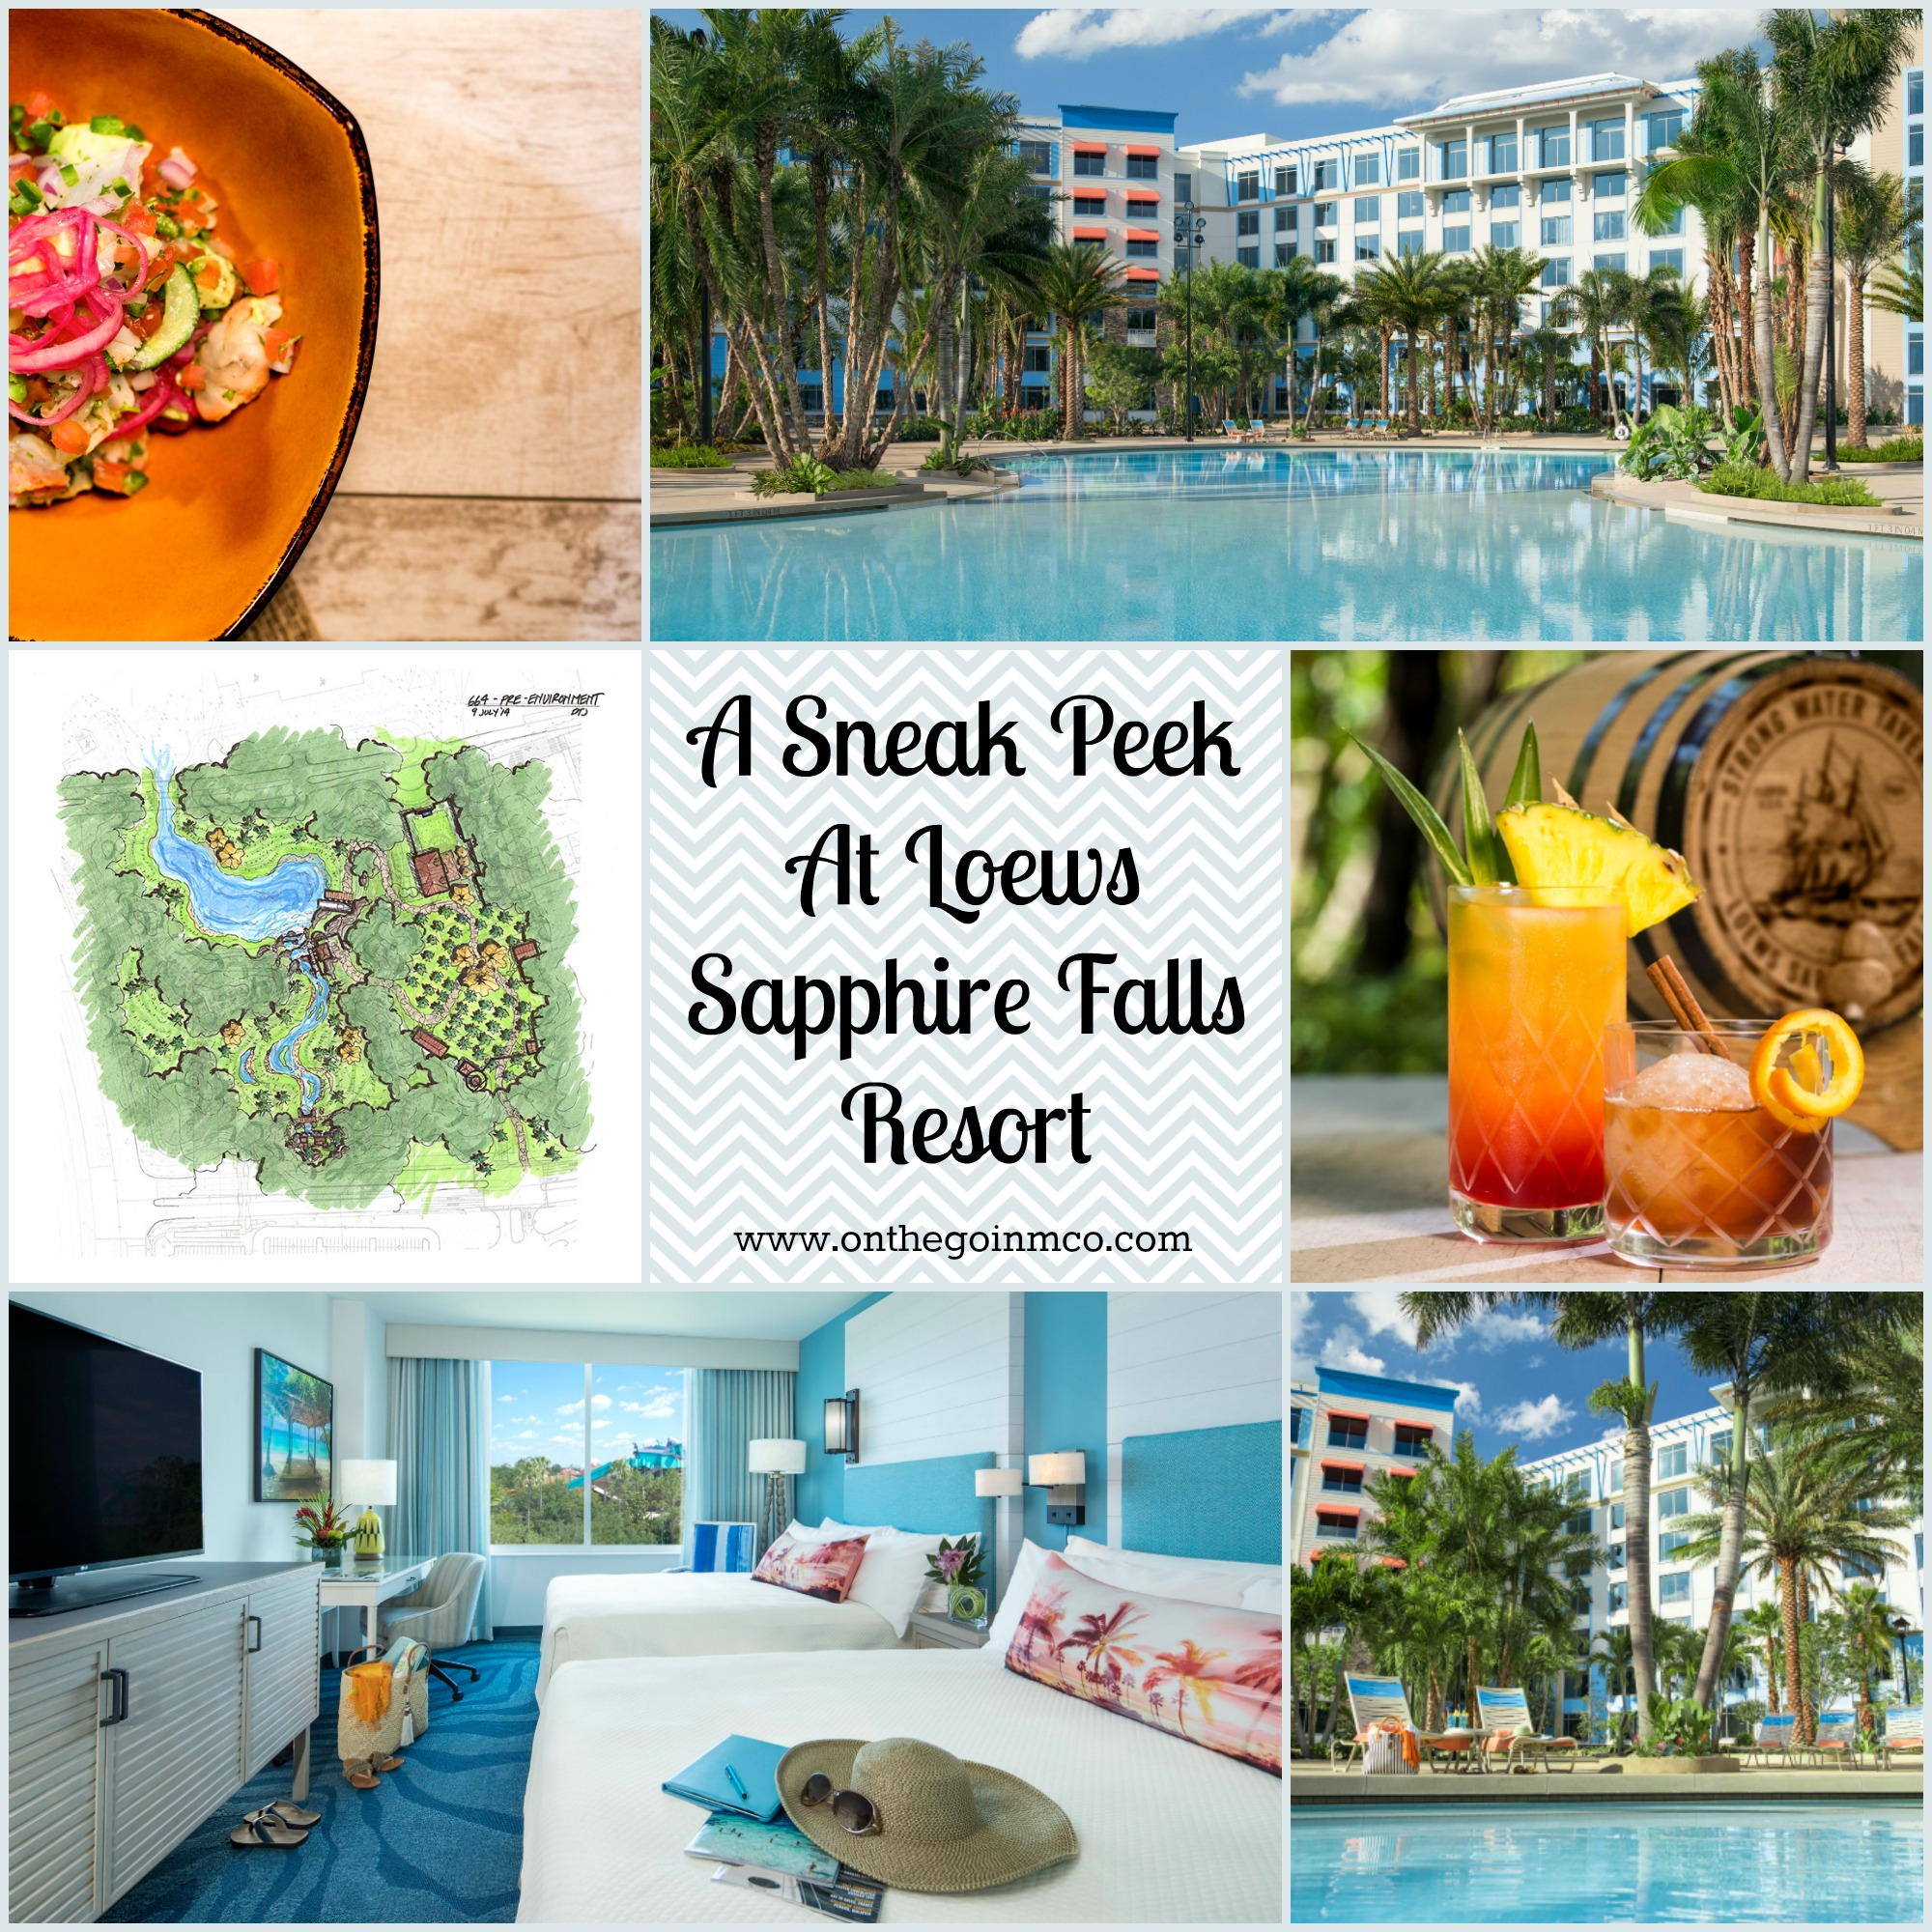 A Sneak Peek At Loews Sapphire Falls Resort Collage